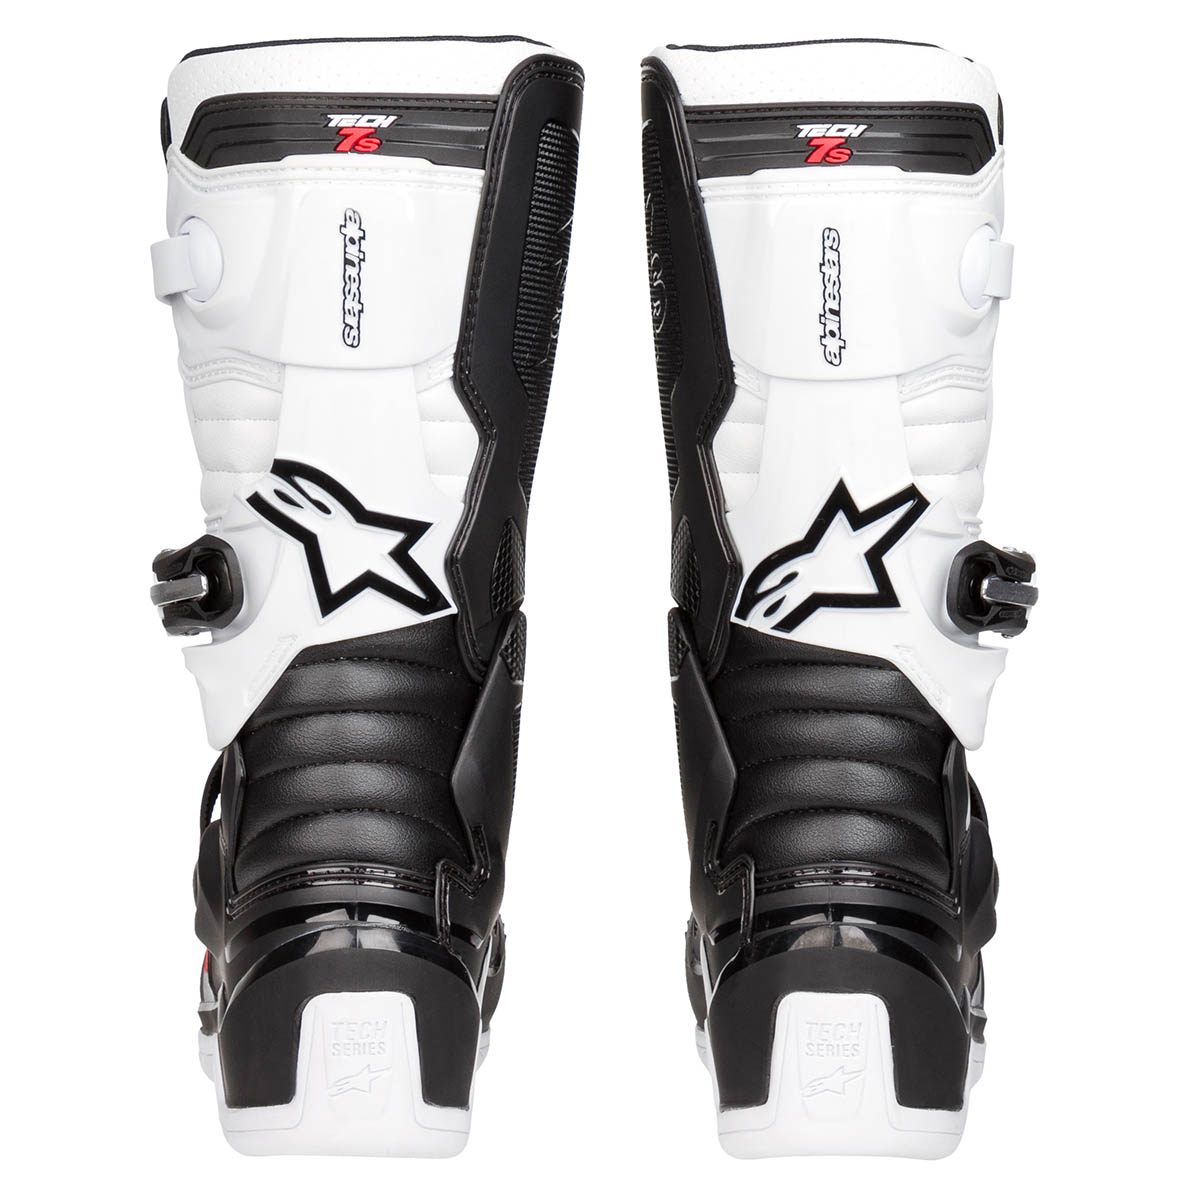 2015017 12 Alpinestars 2020 Youth Tech7S Black White Motocross Boots Kinder Laarzen Stiefel Bottes Enfants